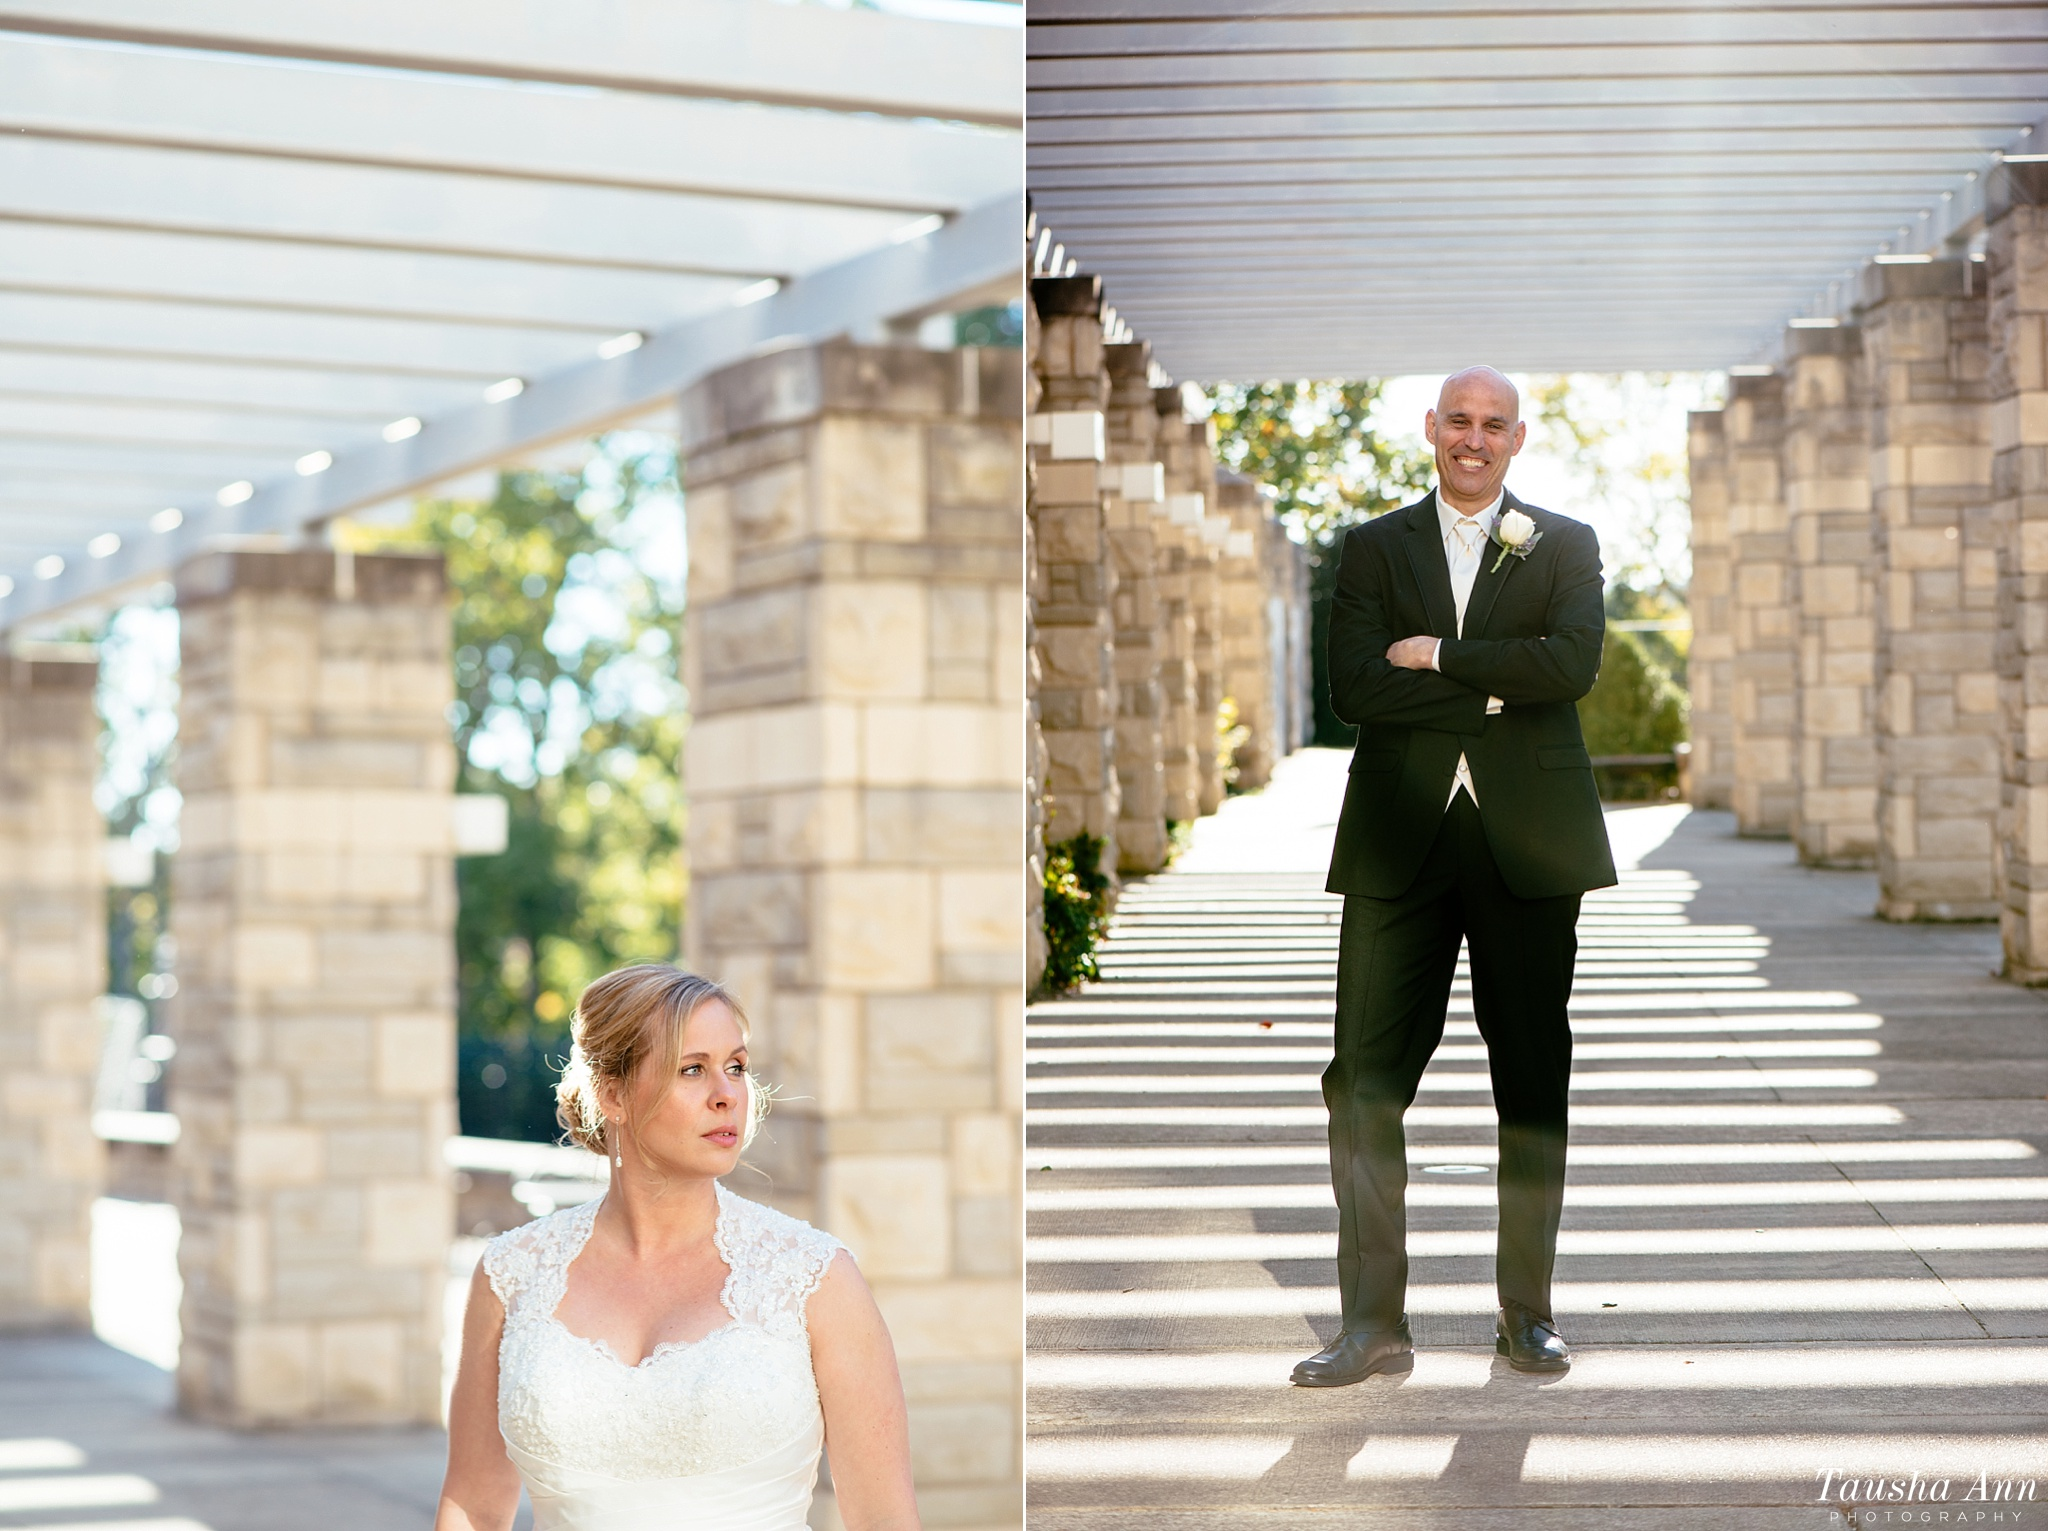 Portraits of Bride and Groom outdoors, backlit.